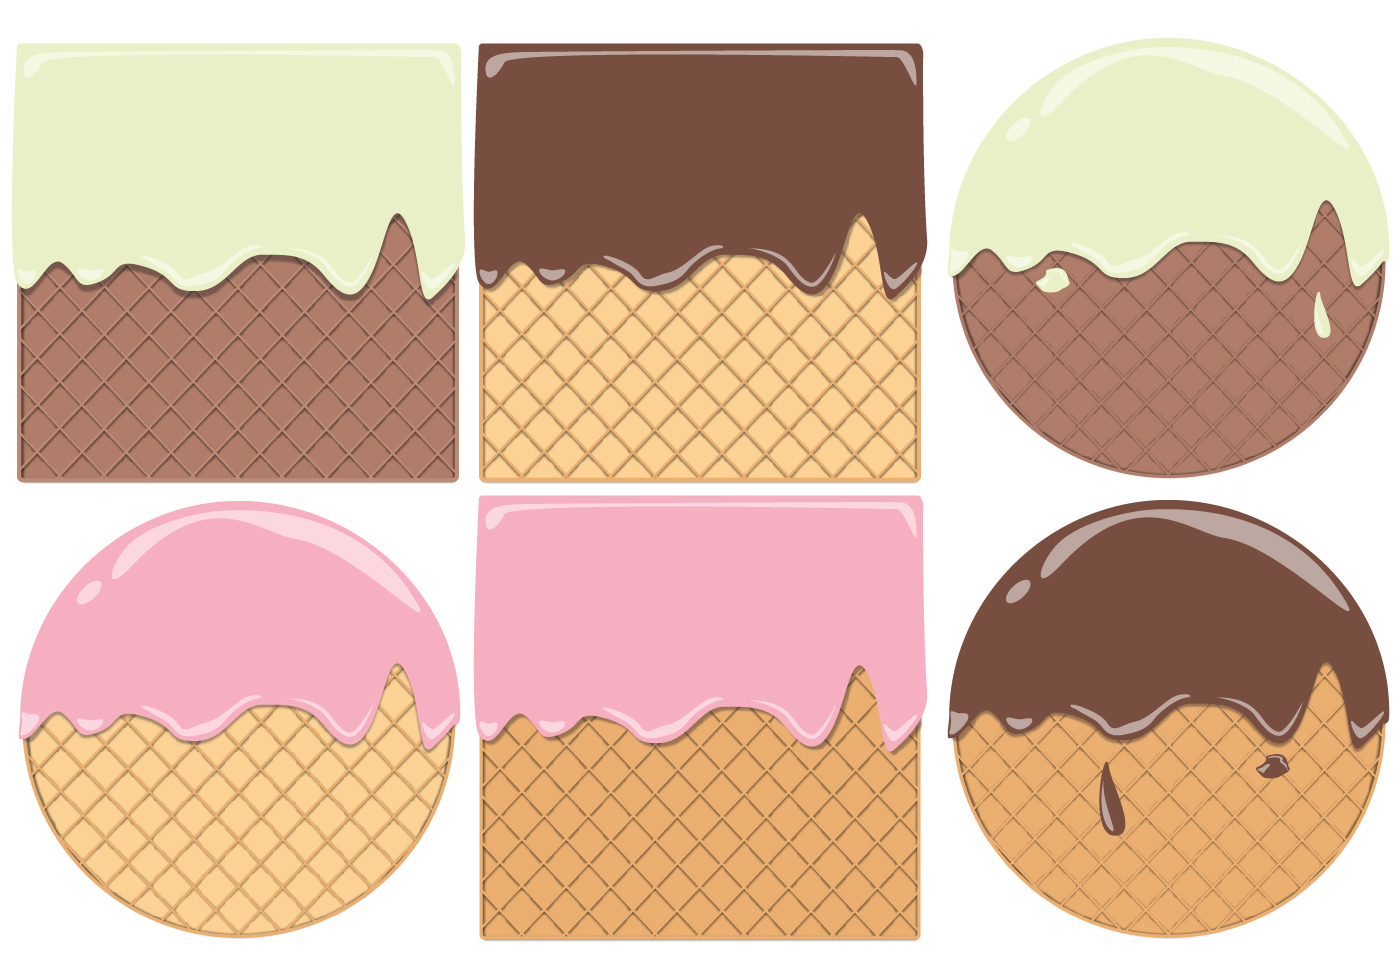 Round And Square Waffle Cone Pattern Vectors  Download